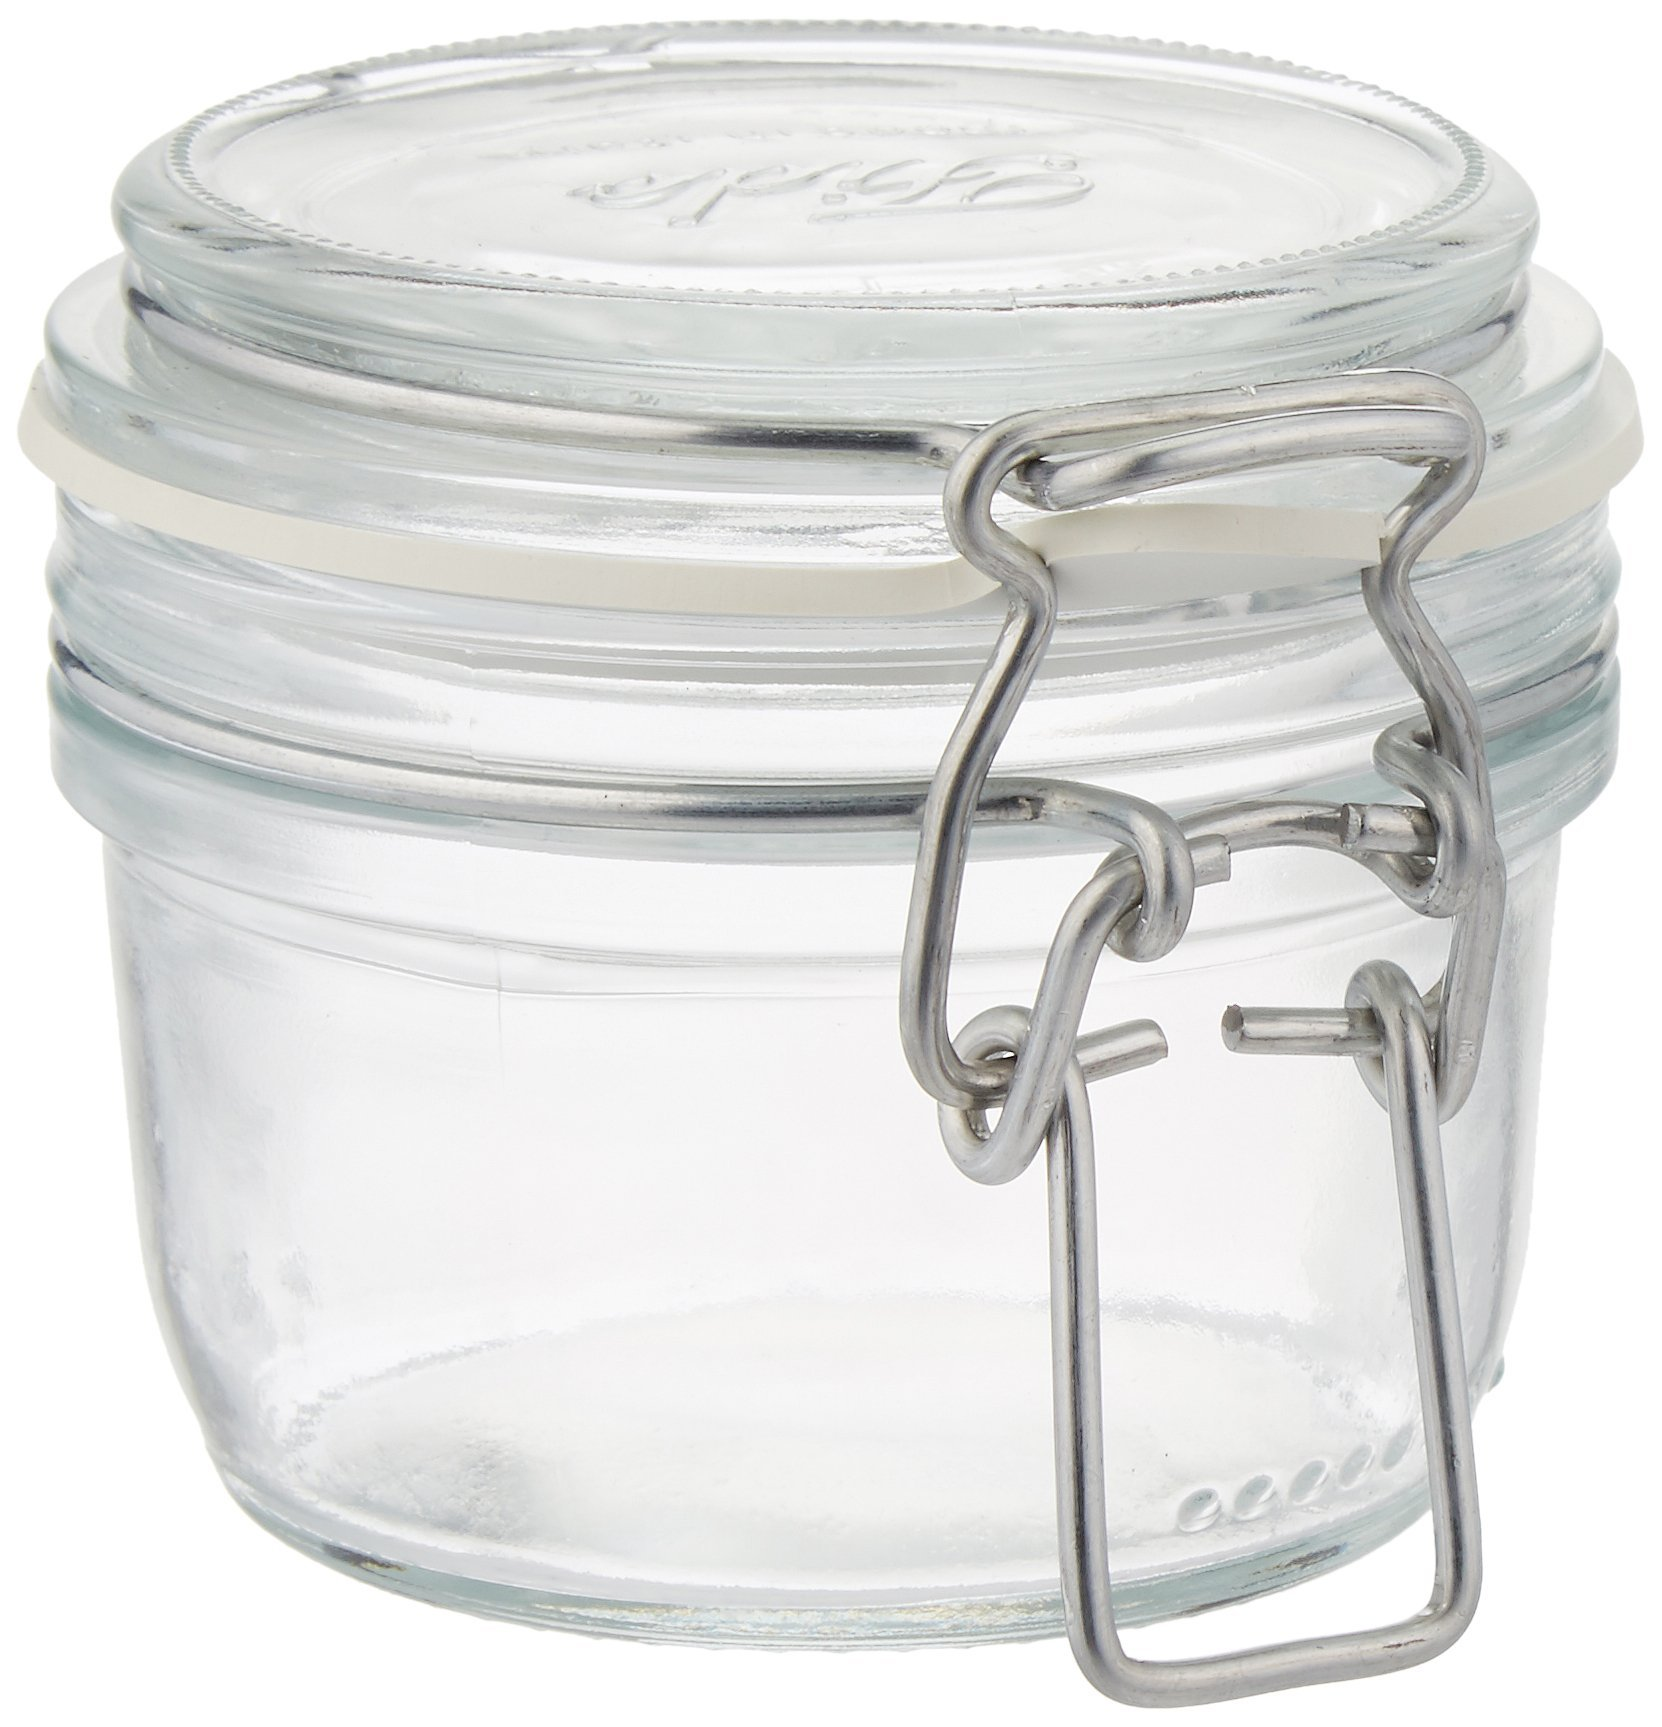 Case of 12 Fido 125 ML (4 1/4 Ounce) Terrine Hermetic Canning Storage Jar